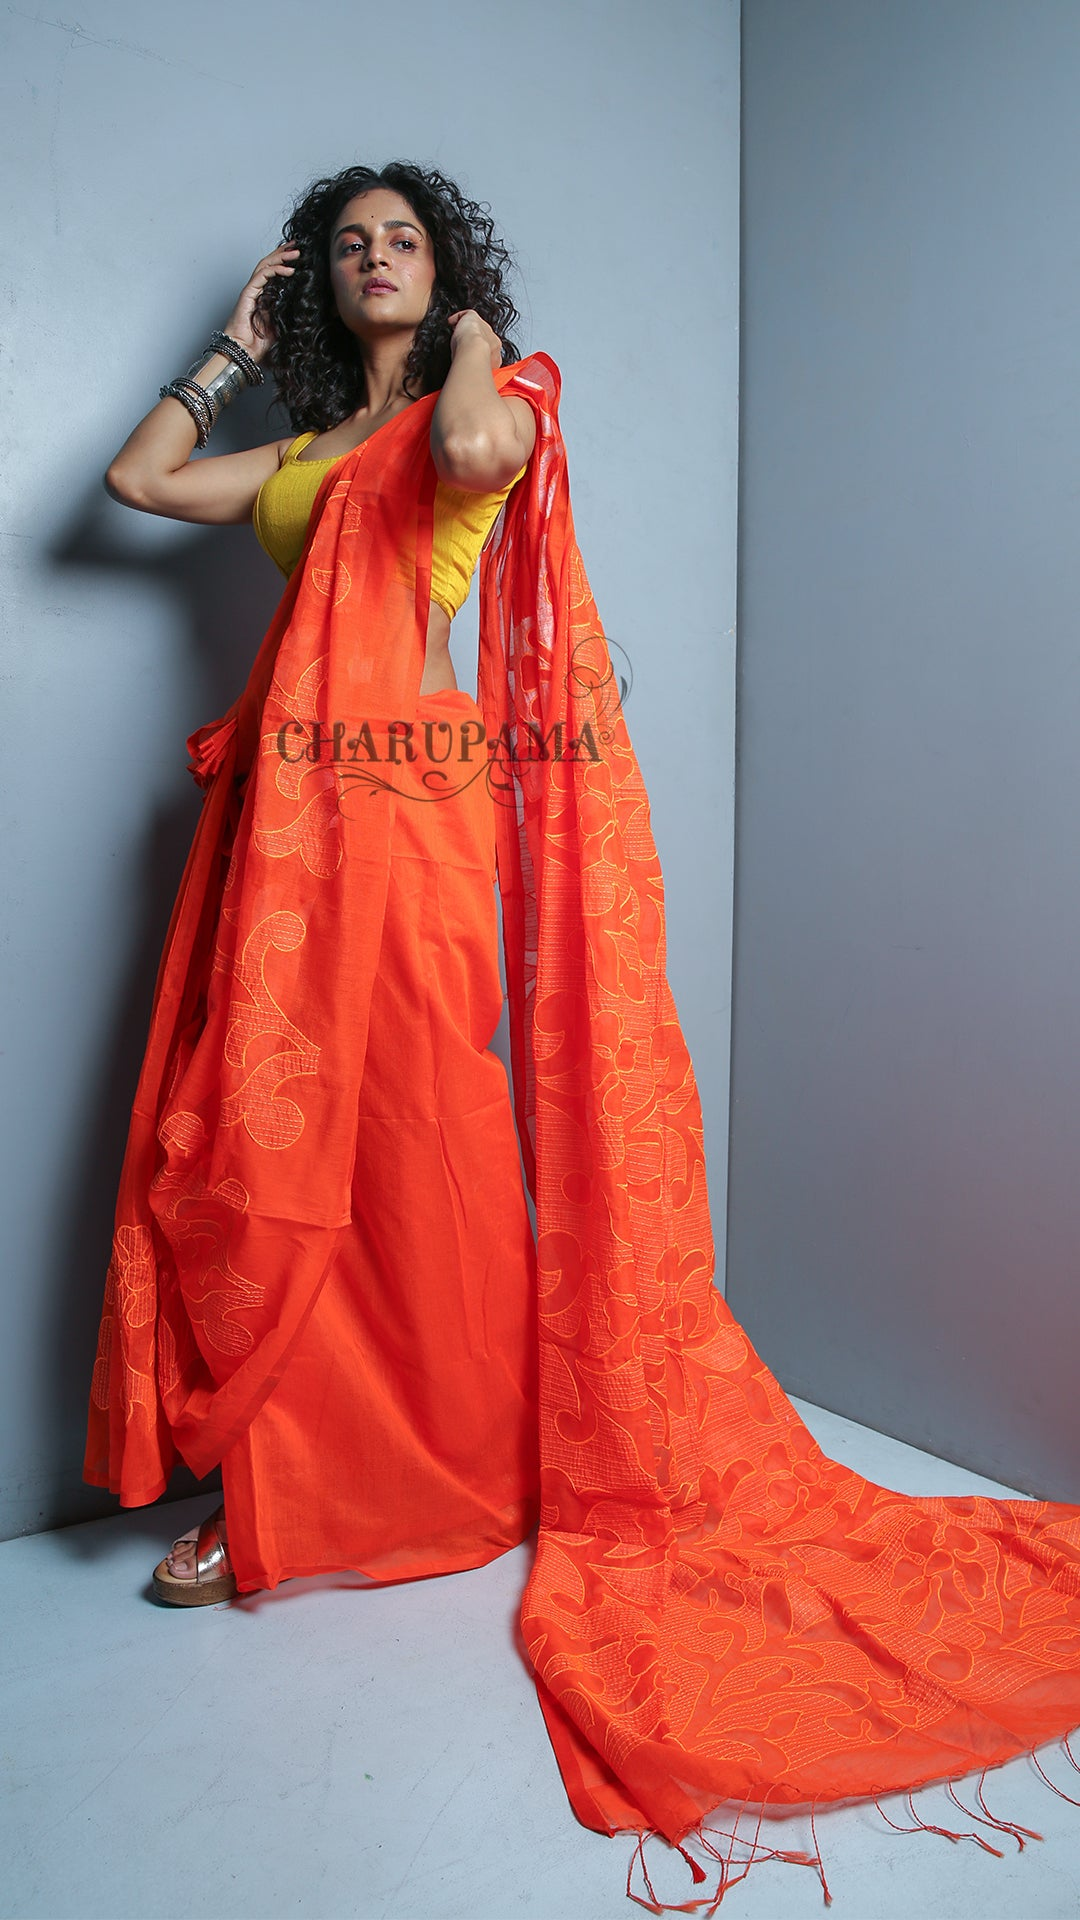 Bright Orange Blended Cotton Saree With Self Thread Embroidered Floral Design And No Border.